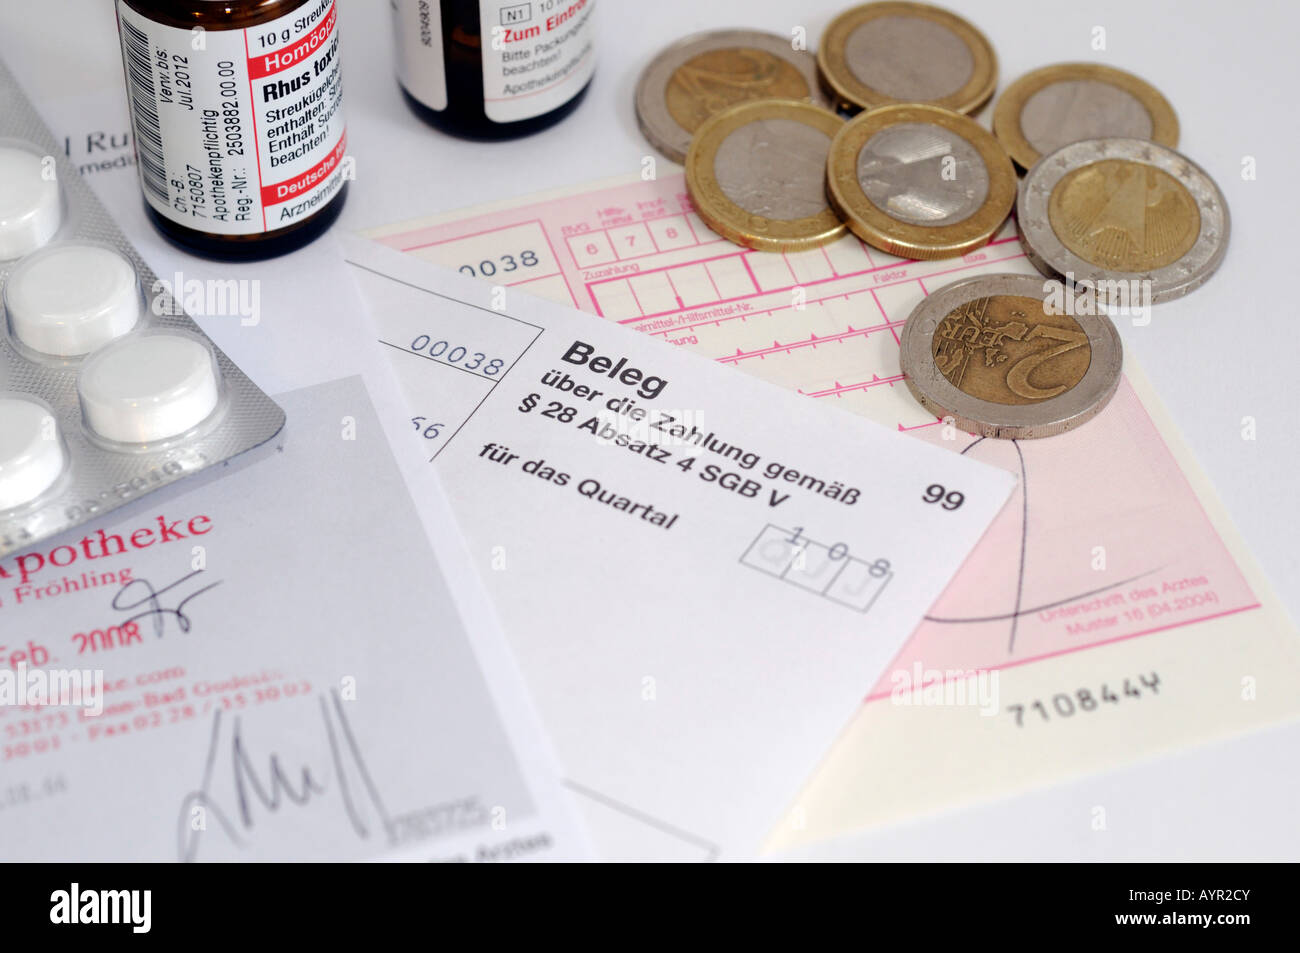 Medication, prescription, receipt and coins - Stock Image